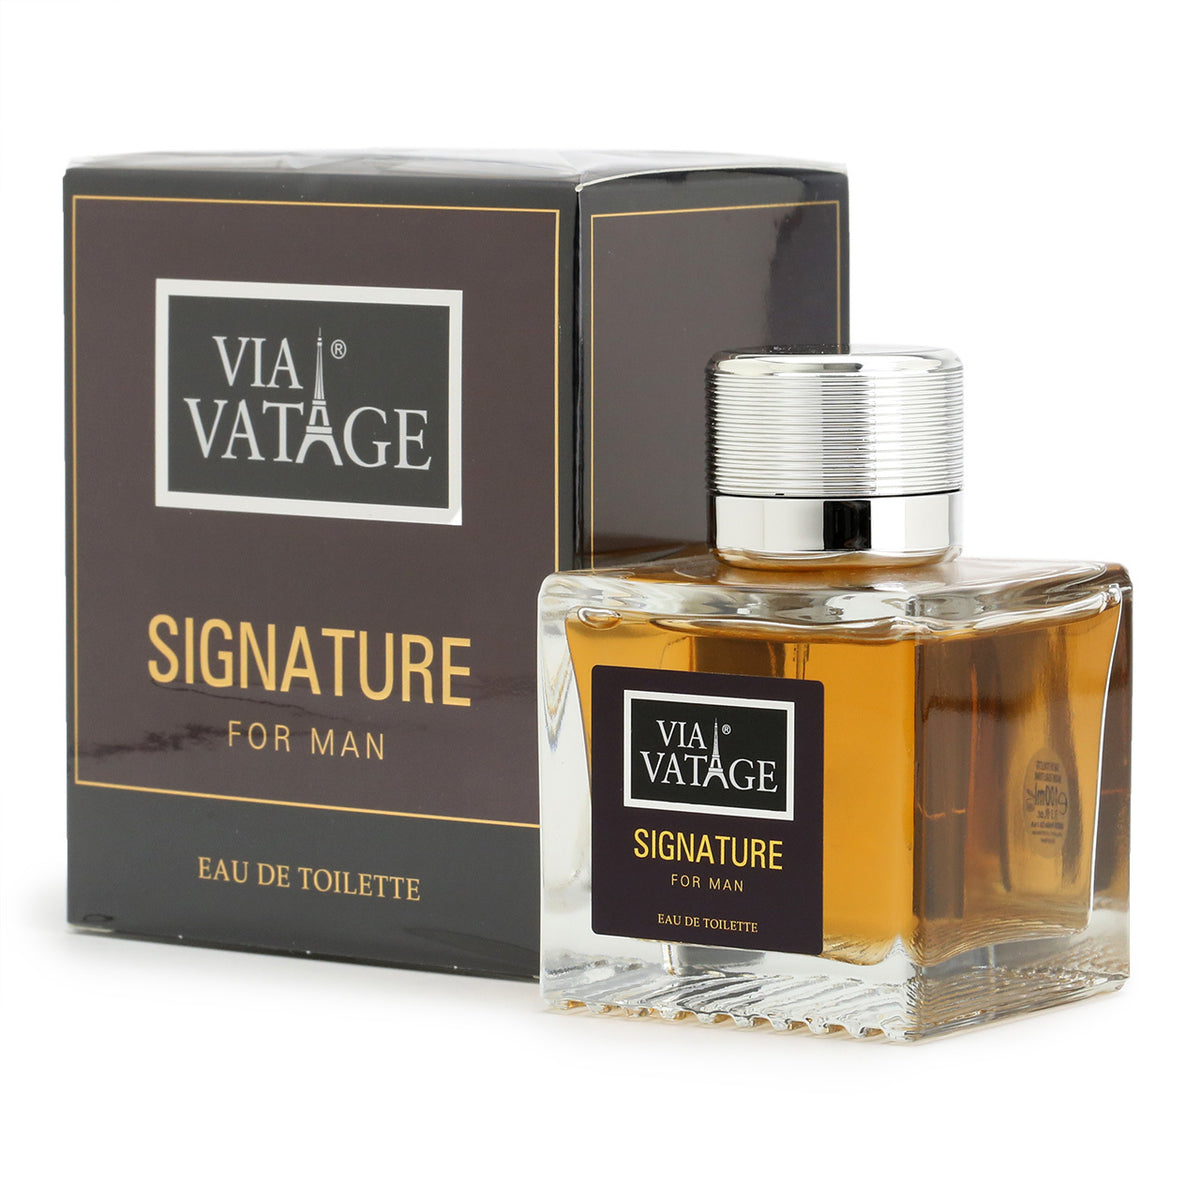 Via Vatage Eau De Toilette 100ml - Signature